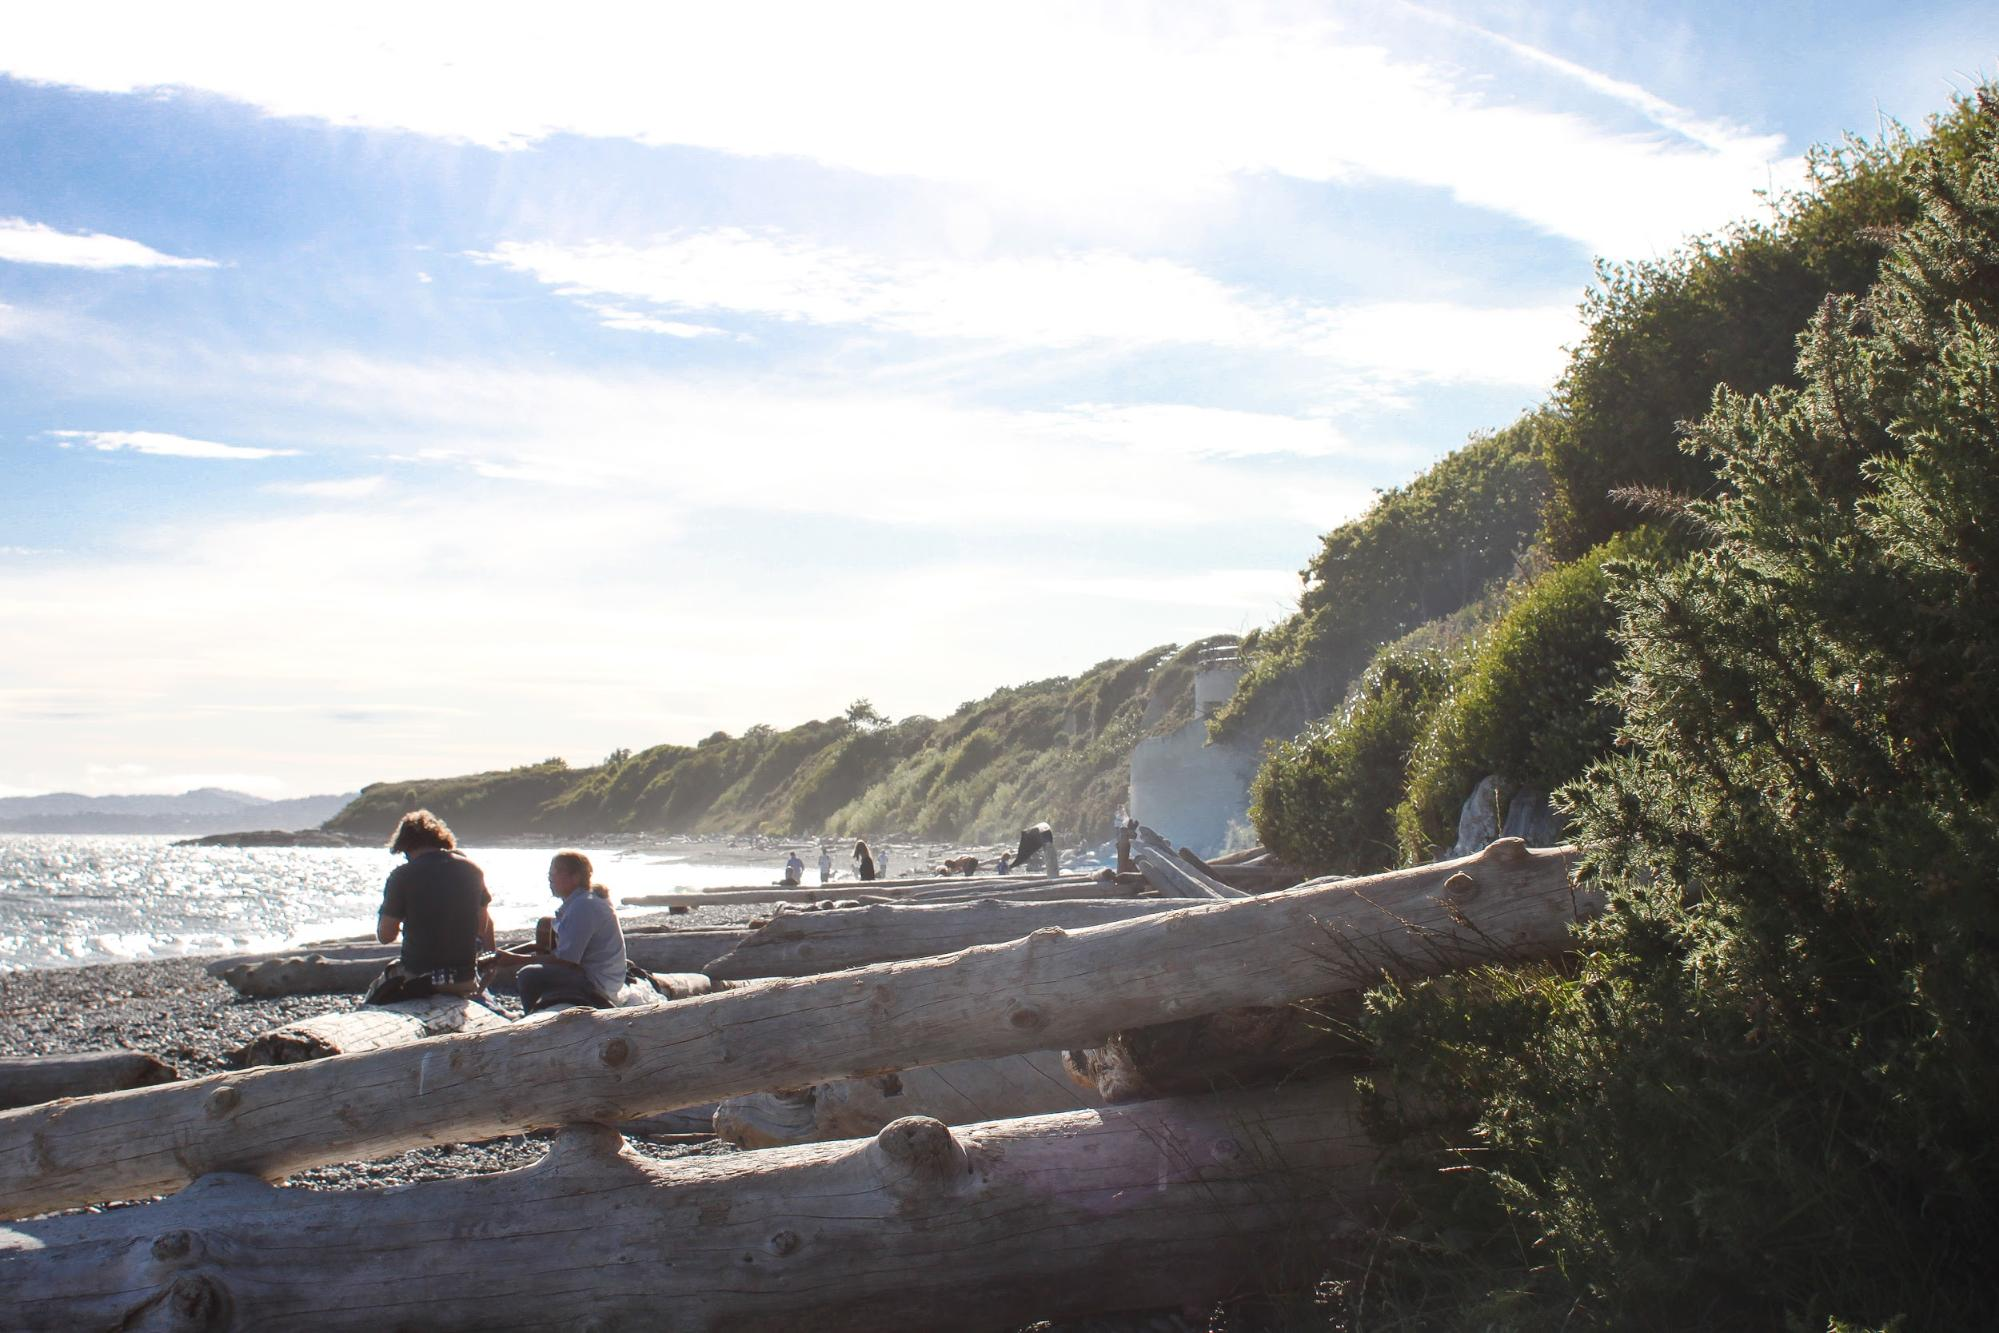 A man and a woman sit on a piece of driftwood overlooking the water.